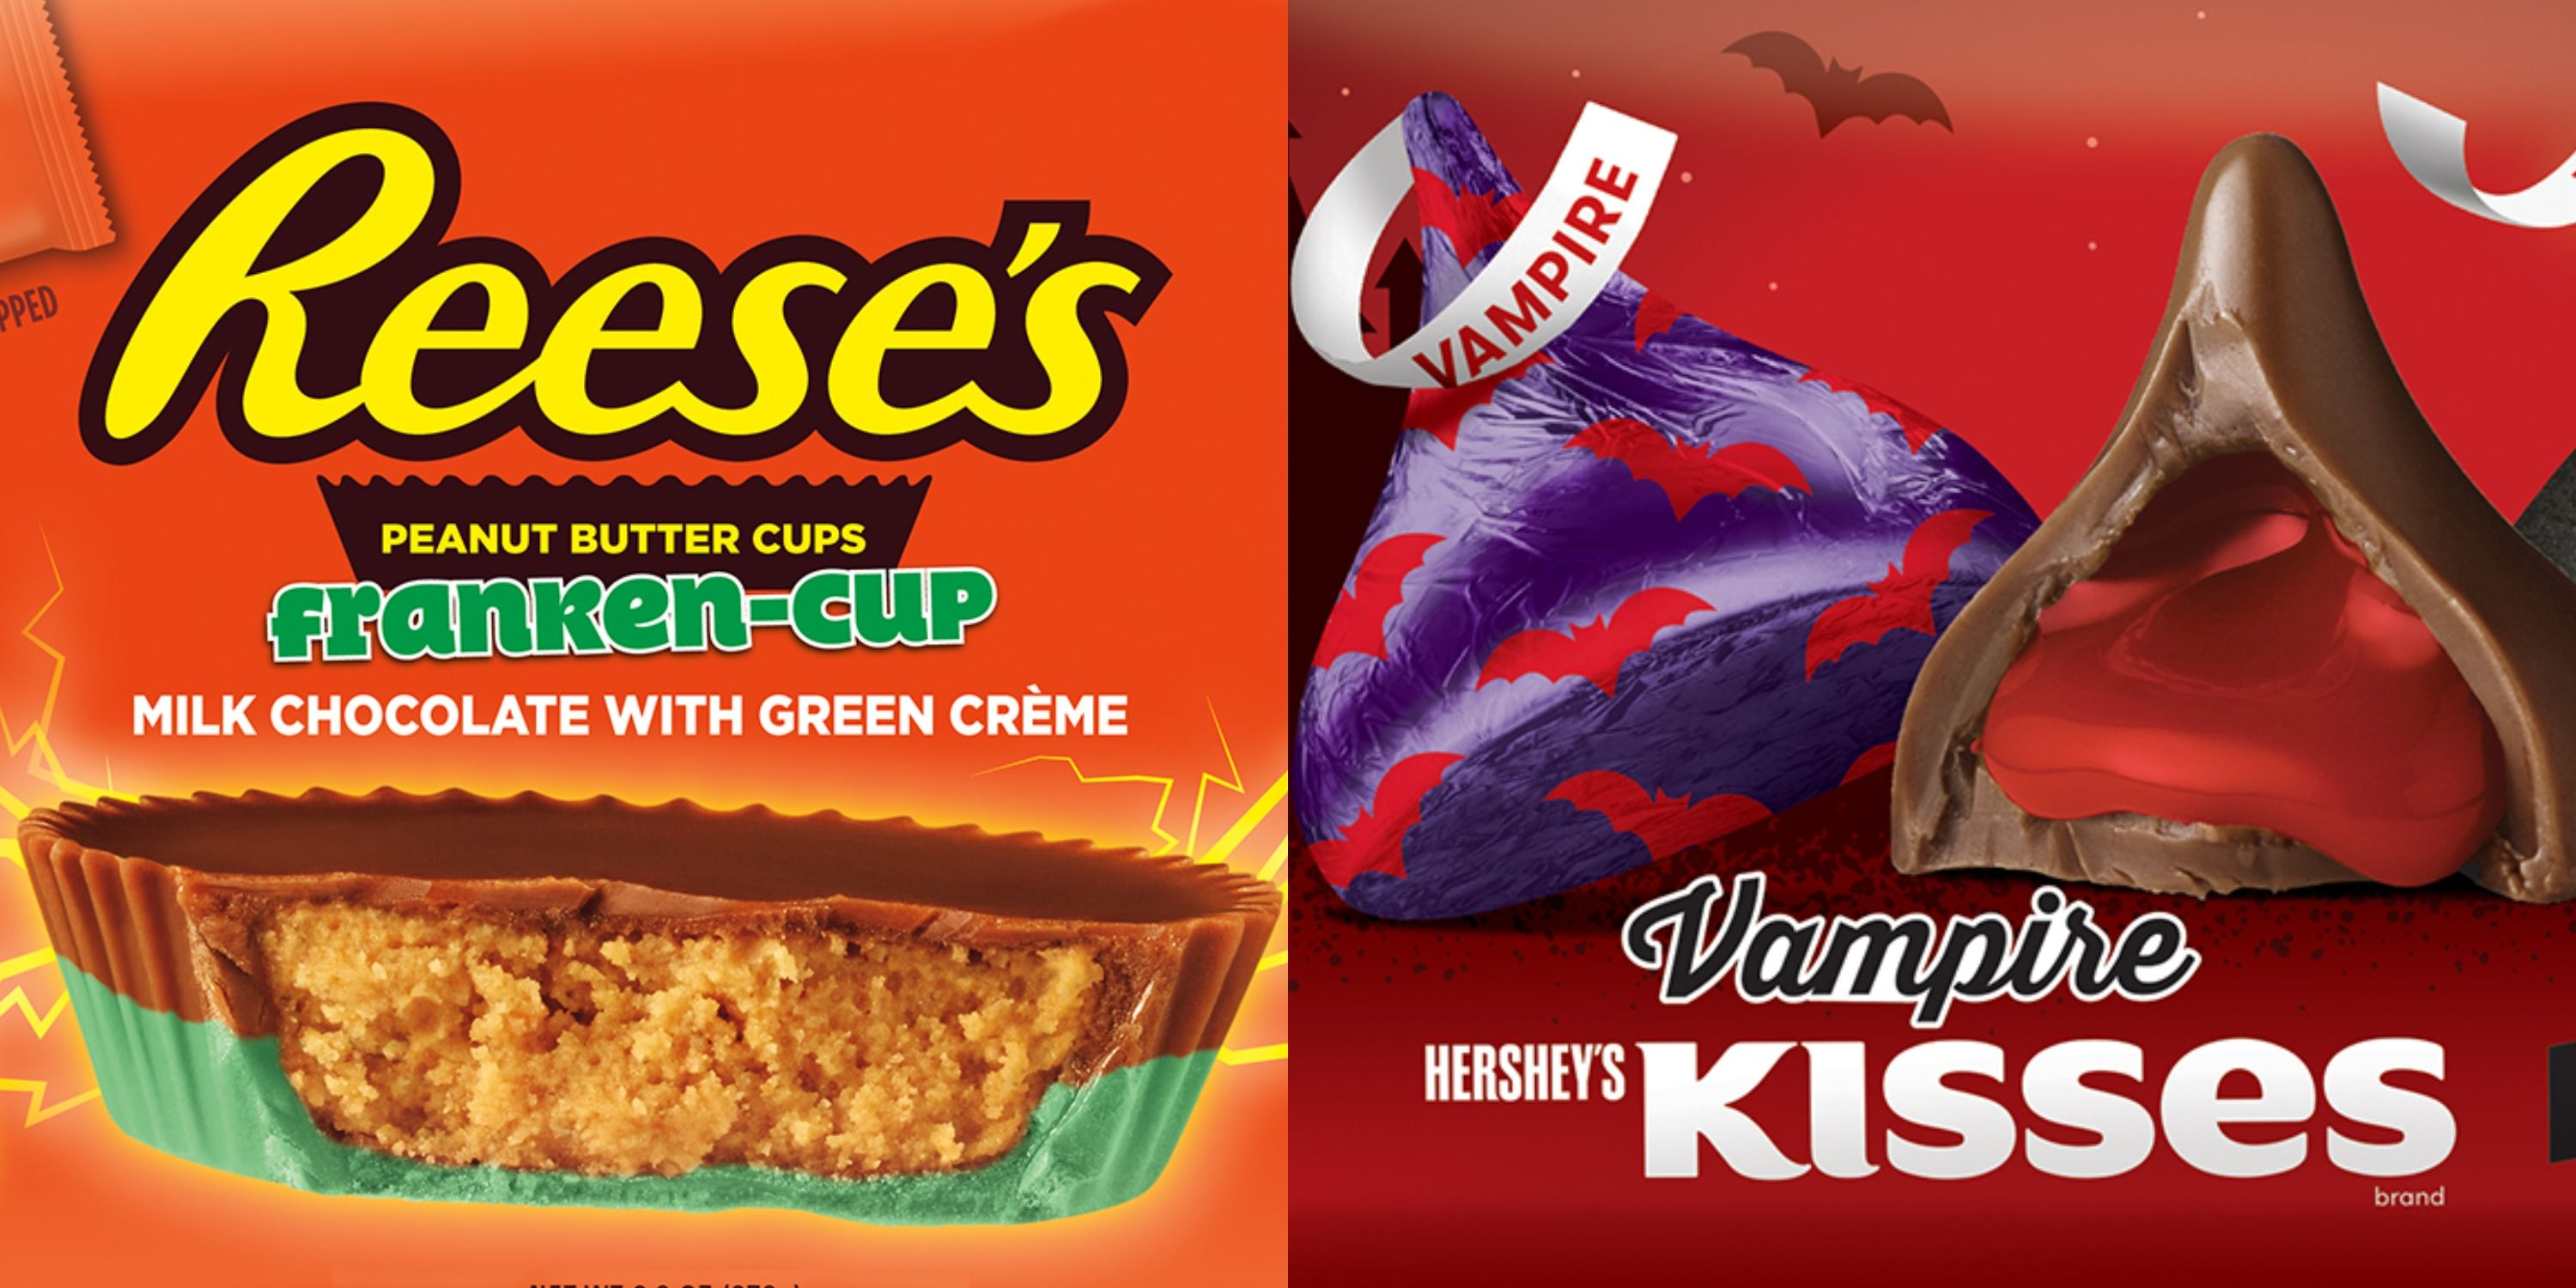 My Candy Love 2020 Halloween Hershey's Halloween Candy 2020: Reese's Franken Cup, Vampire Kisses